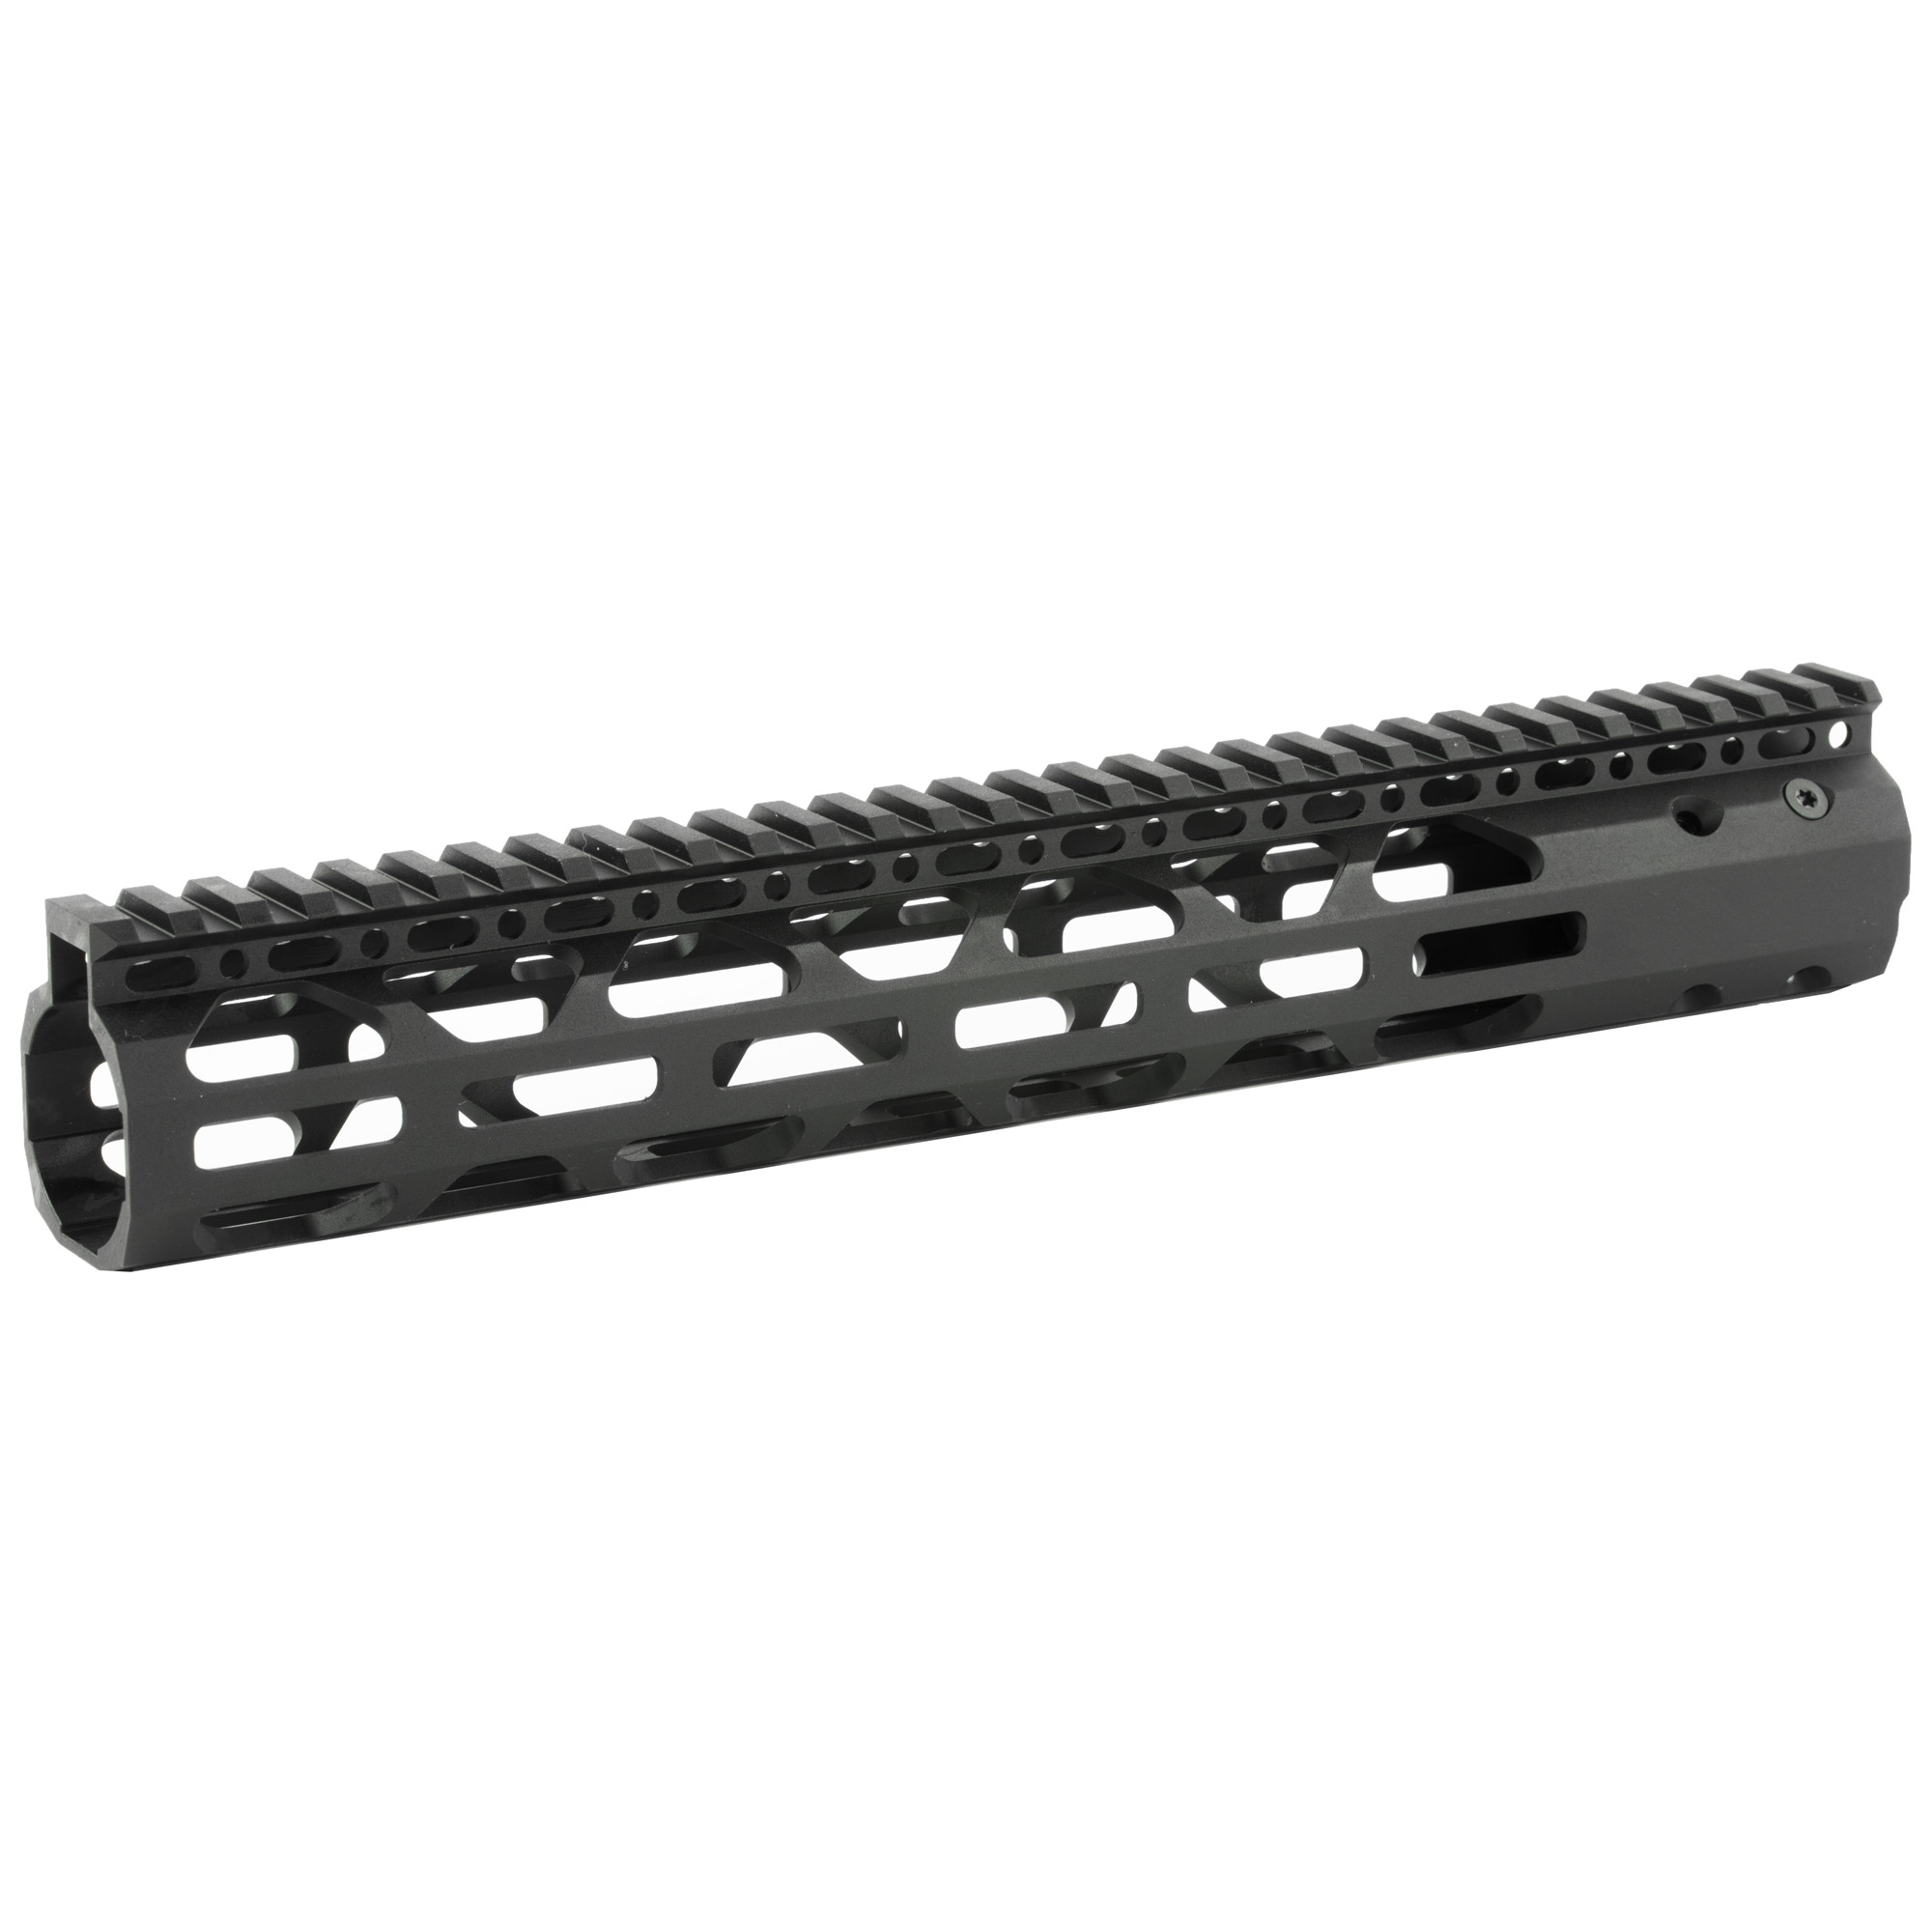 """The Advanced Technology Int. 12"""" Slim AR-15 Free-Float Forend Package fits AR-15 variants. Does Not fit AR-10 or .308 Variants. Made with military type III anodized"""" 6061 T6 aluminum and is ultra-light and virtually indestructible. It has a seamless intergraded top rail and M-LOK mounting locations on 3 sides for rails or compatible accessories. Made in the USA."""